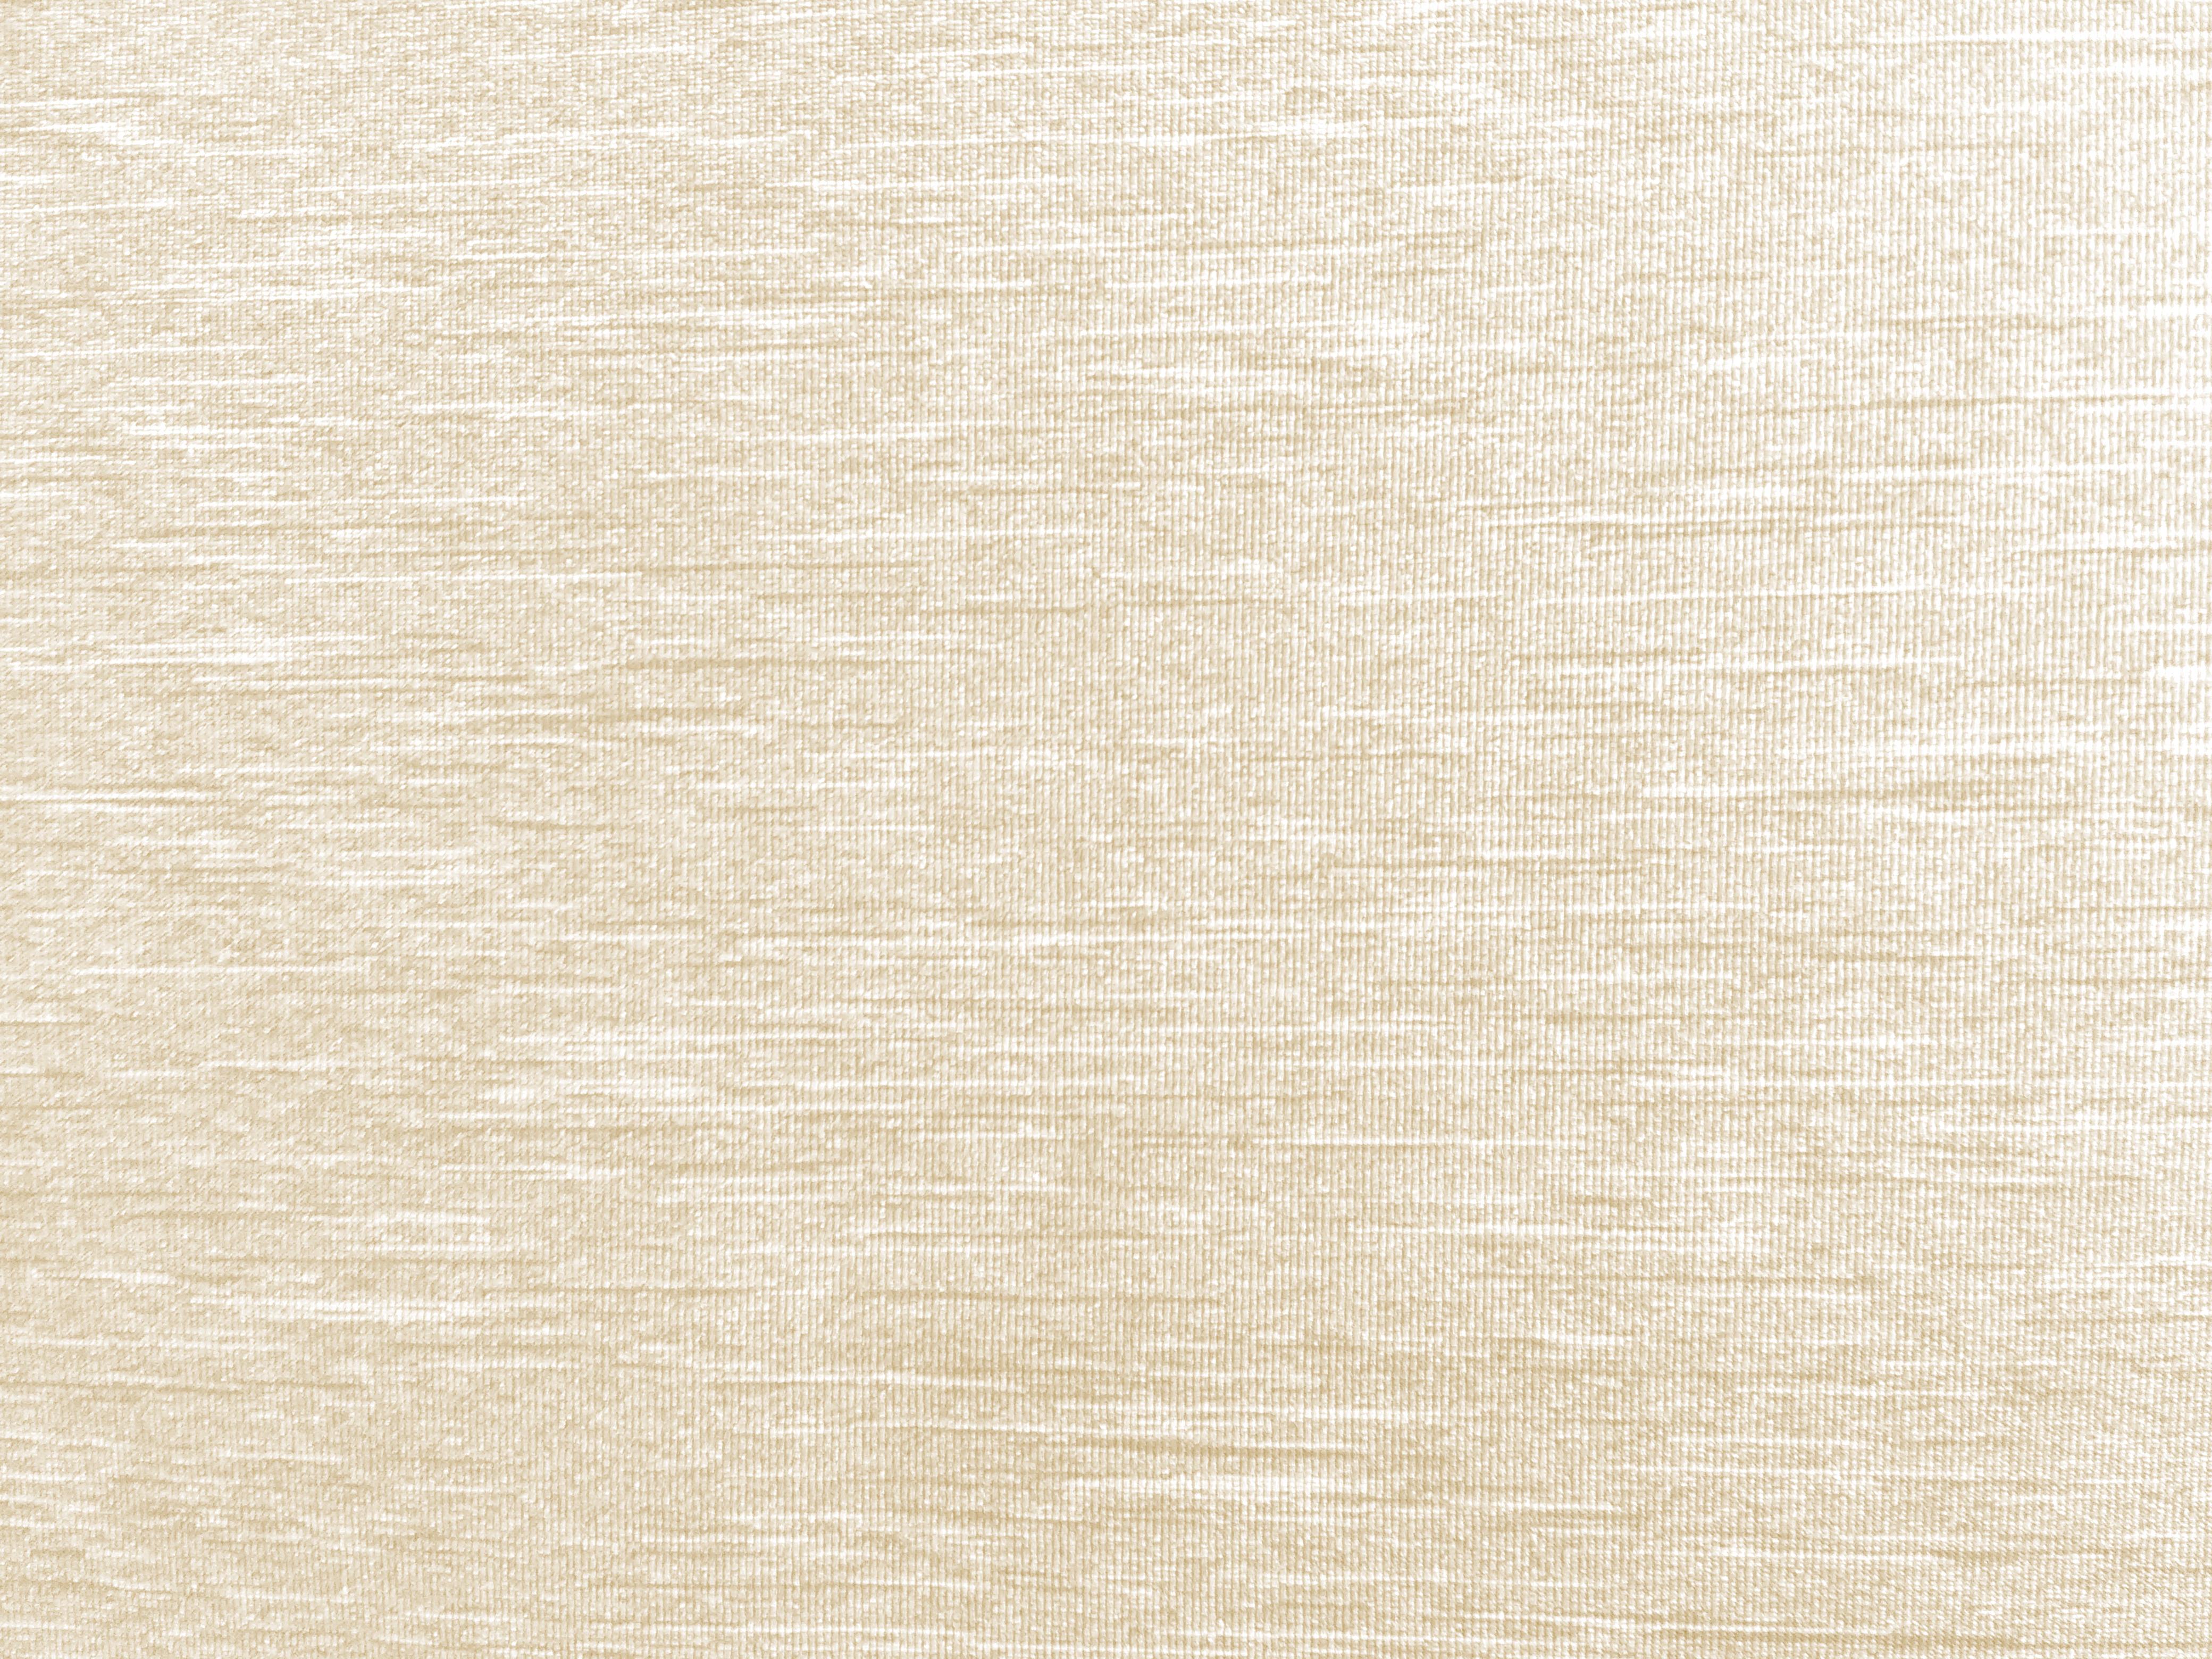 Beige Variegated Knit Fabric Texture Picture Free